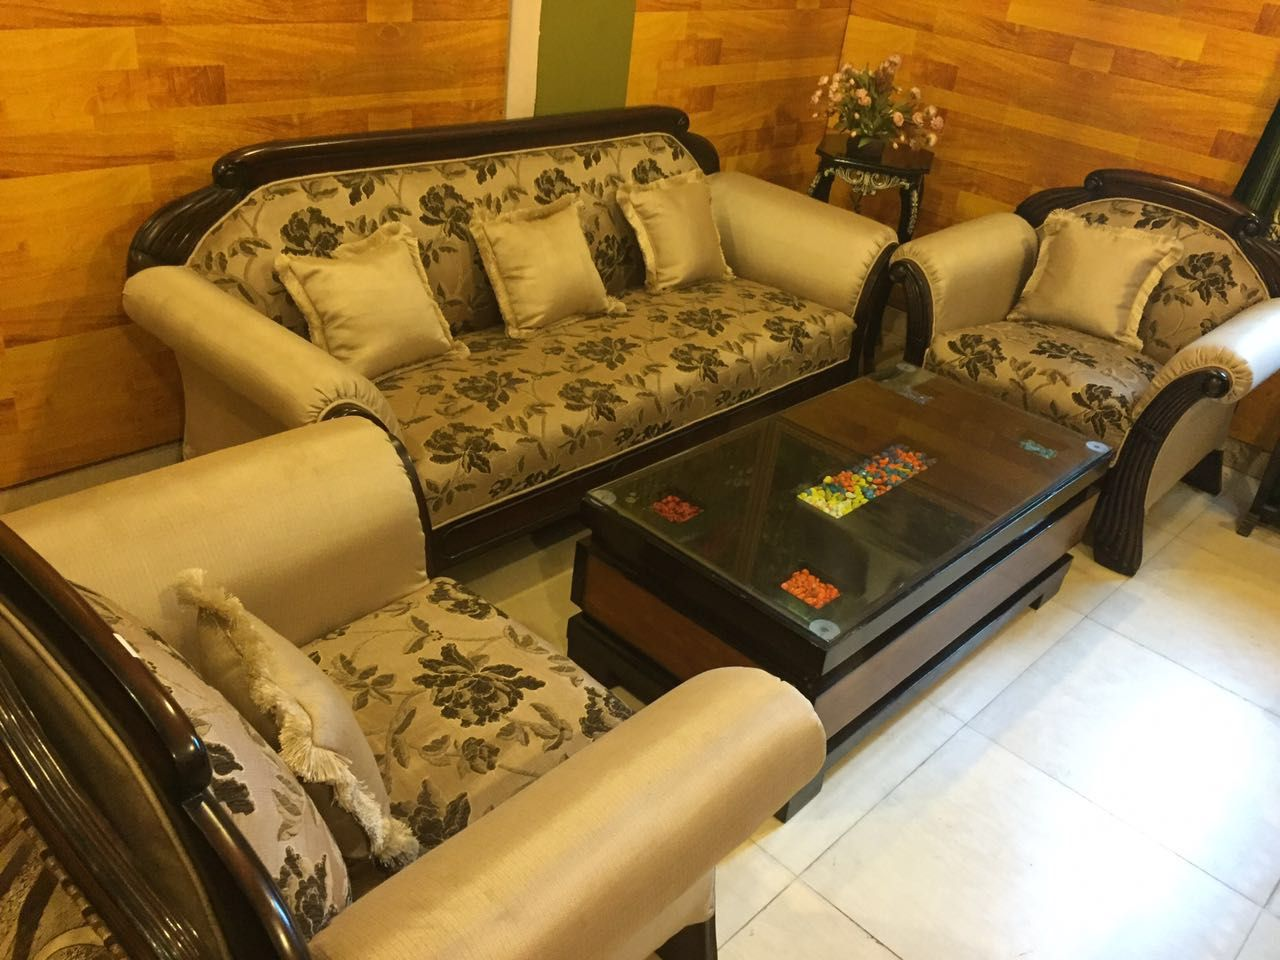 Best Quality Of Furniture with 10 Years Of warrenty